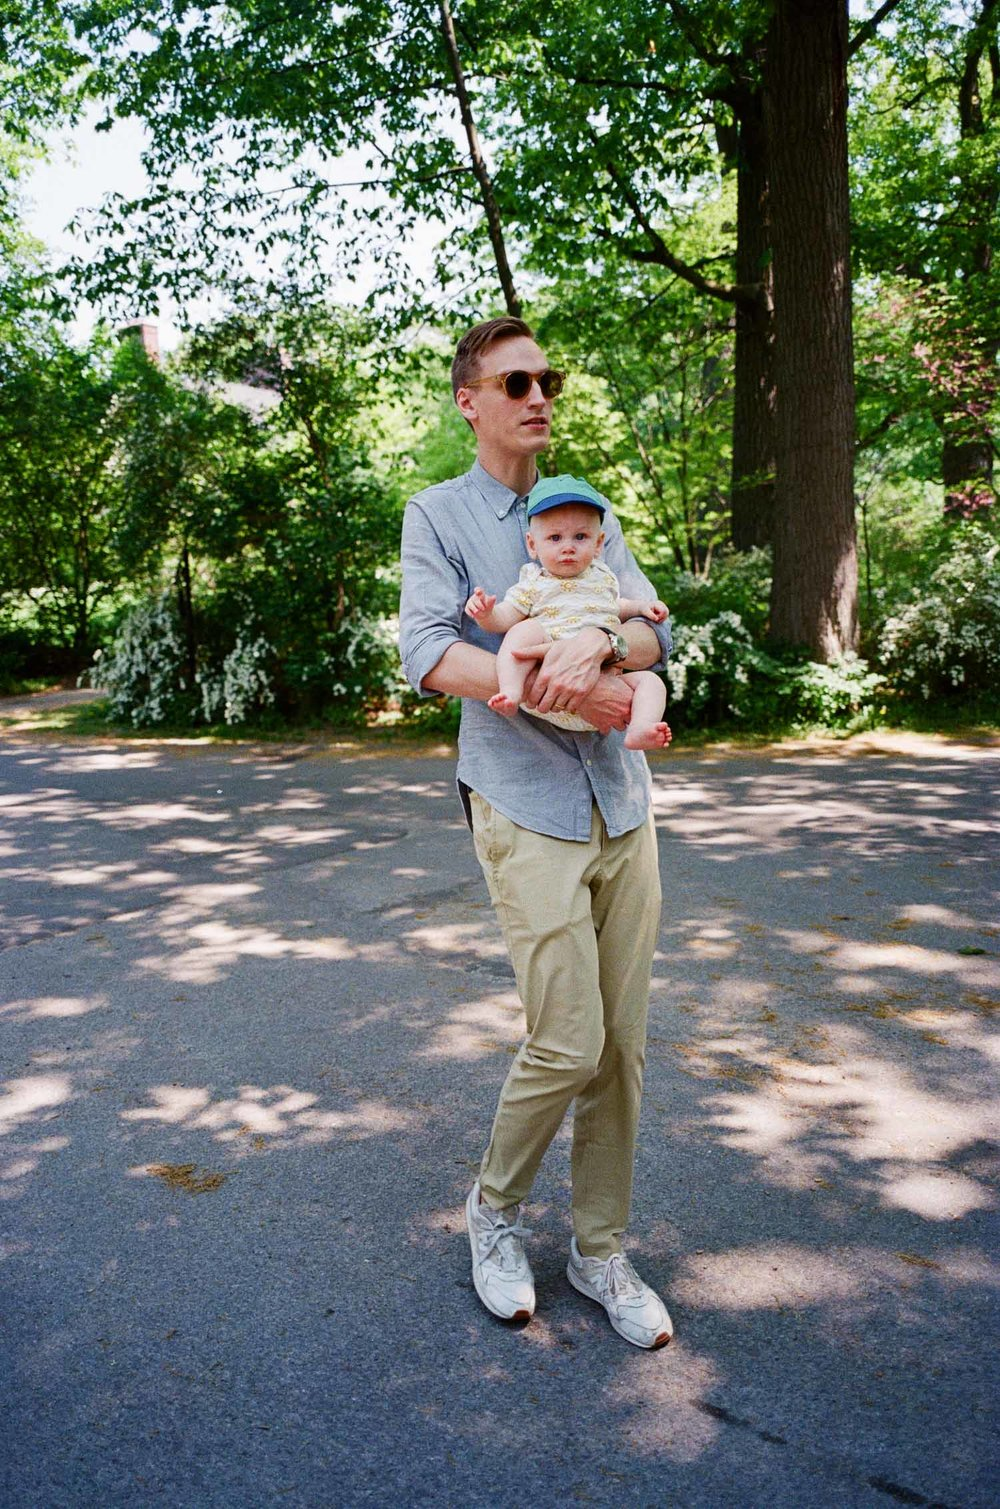 dad carrying son.jpg